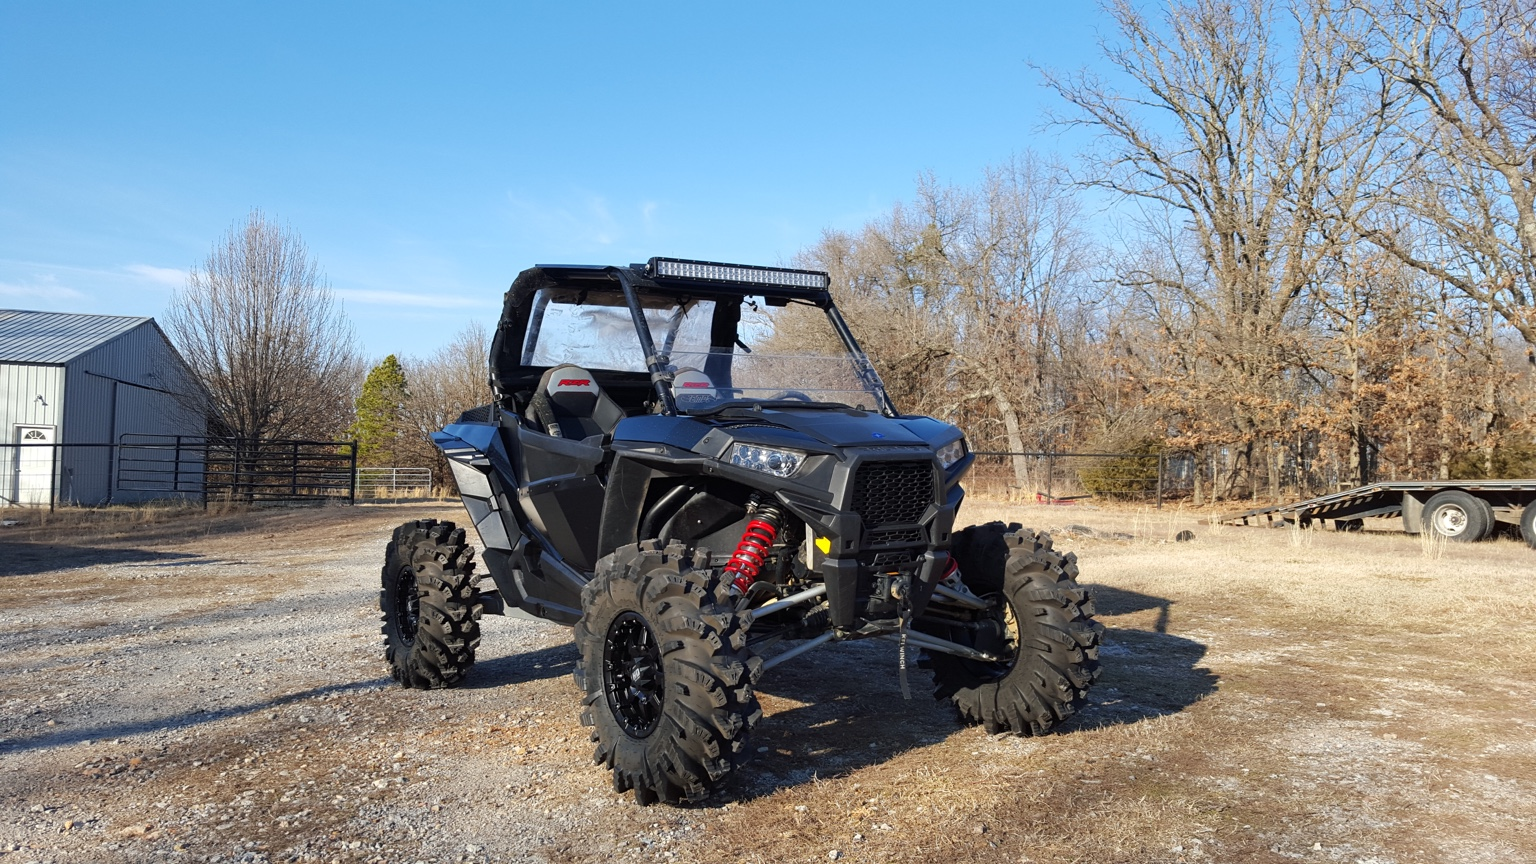 Dsc additionally Polaris Rzr Spare Tire Carrier Stc Rzr K Polaris Rzr Spare Tire Carrier Grande besides Motoxman Albums Rzr Xp Picture Nrg Steering Wheel Quick Release P N Srk Rd likewise Bee E C F A A Zpsecncparo as well F. on polaris rzr xp4 1000